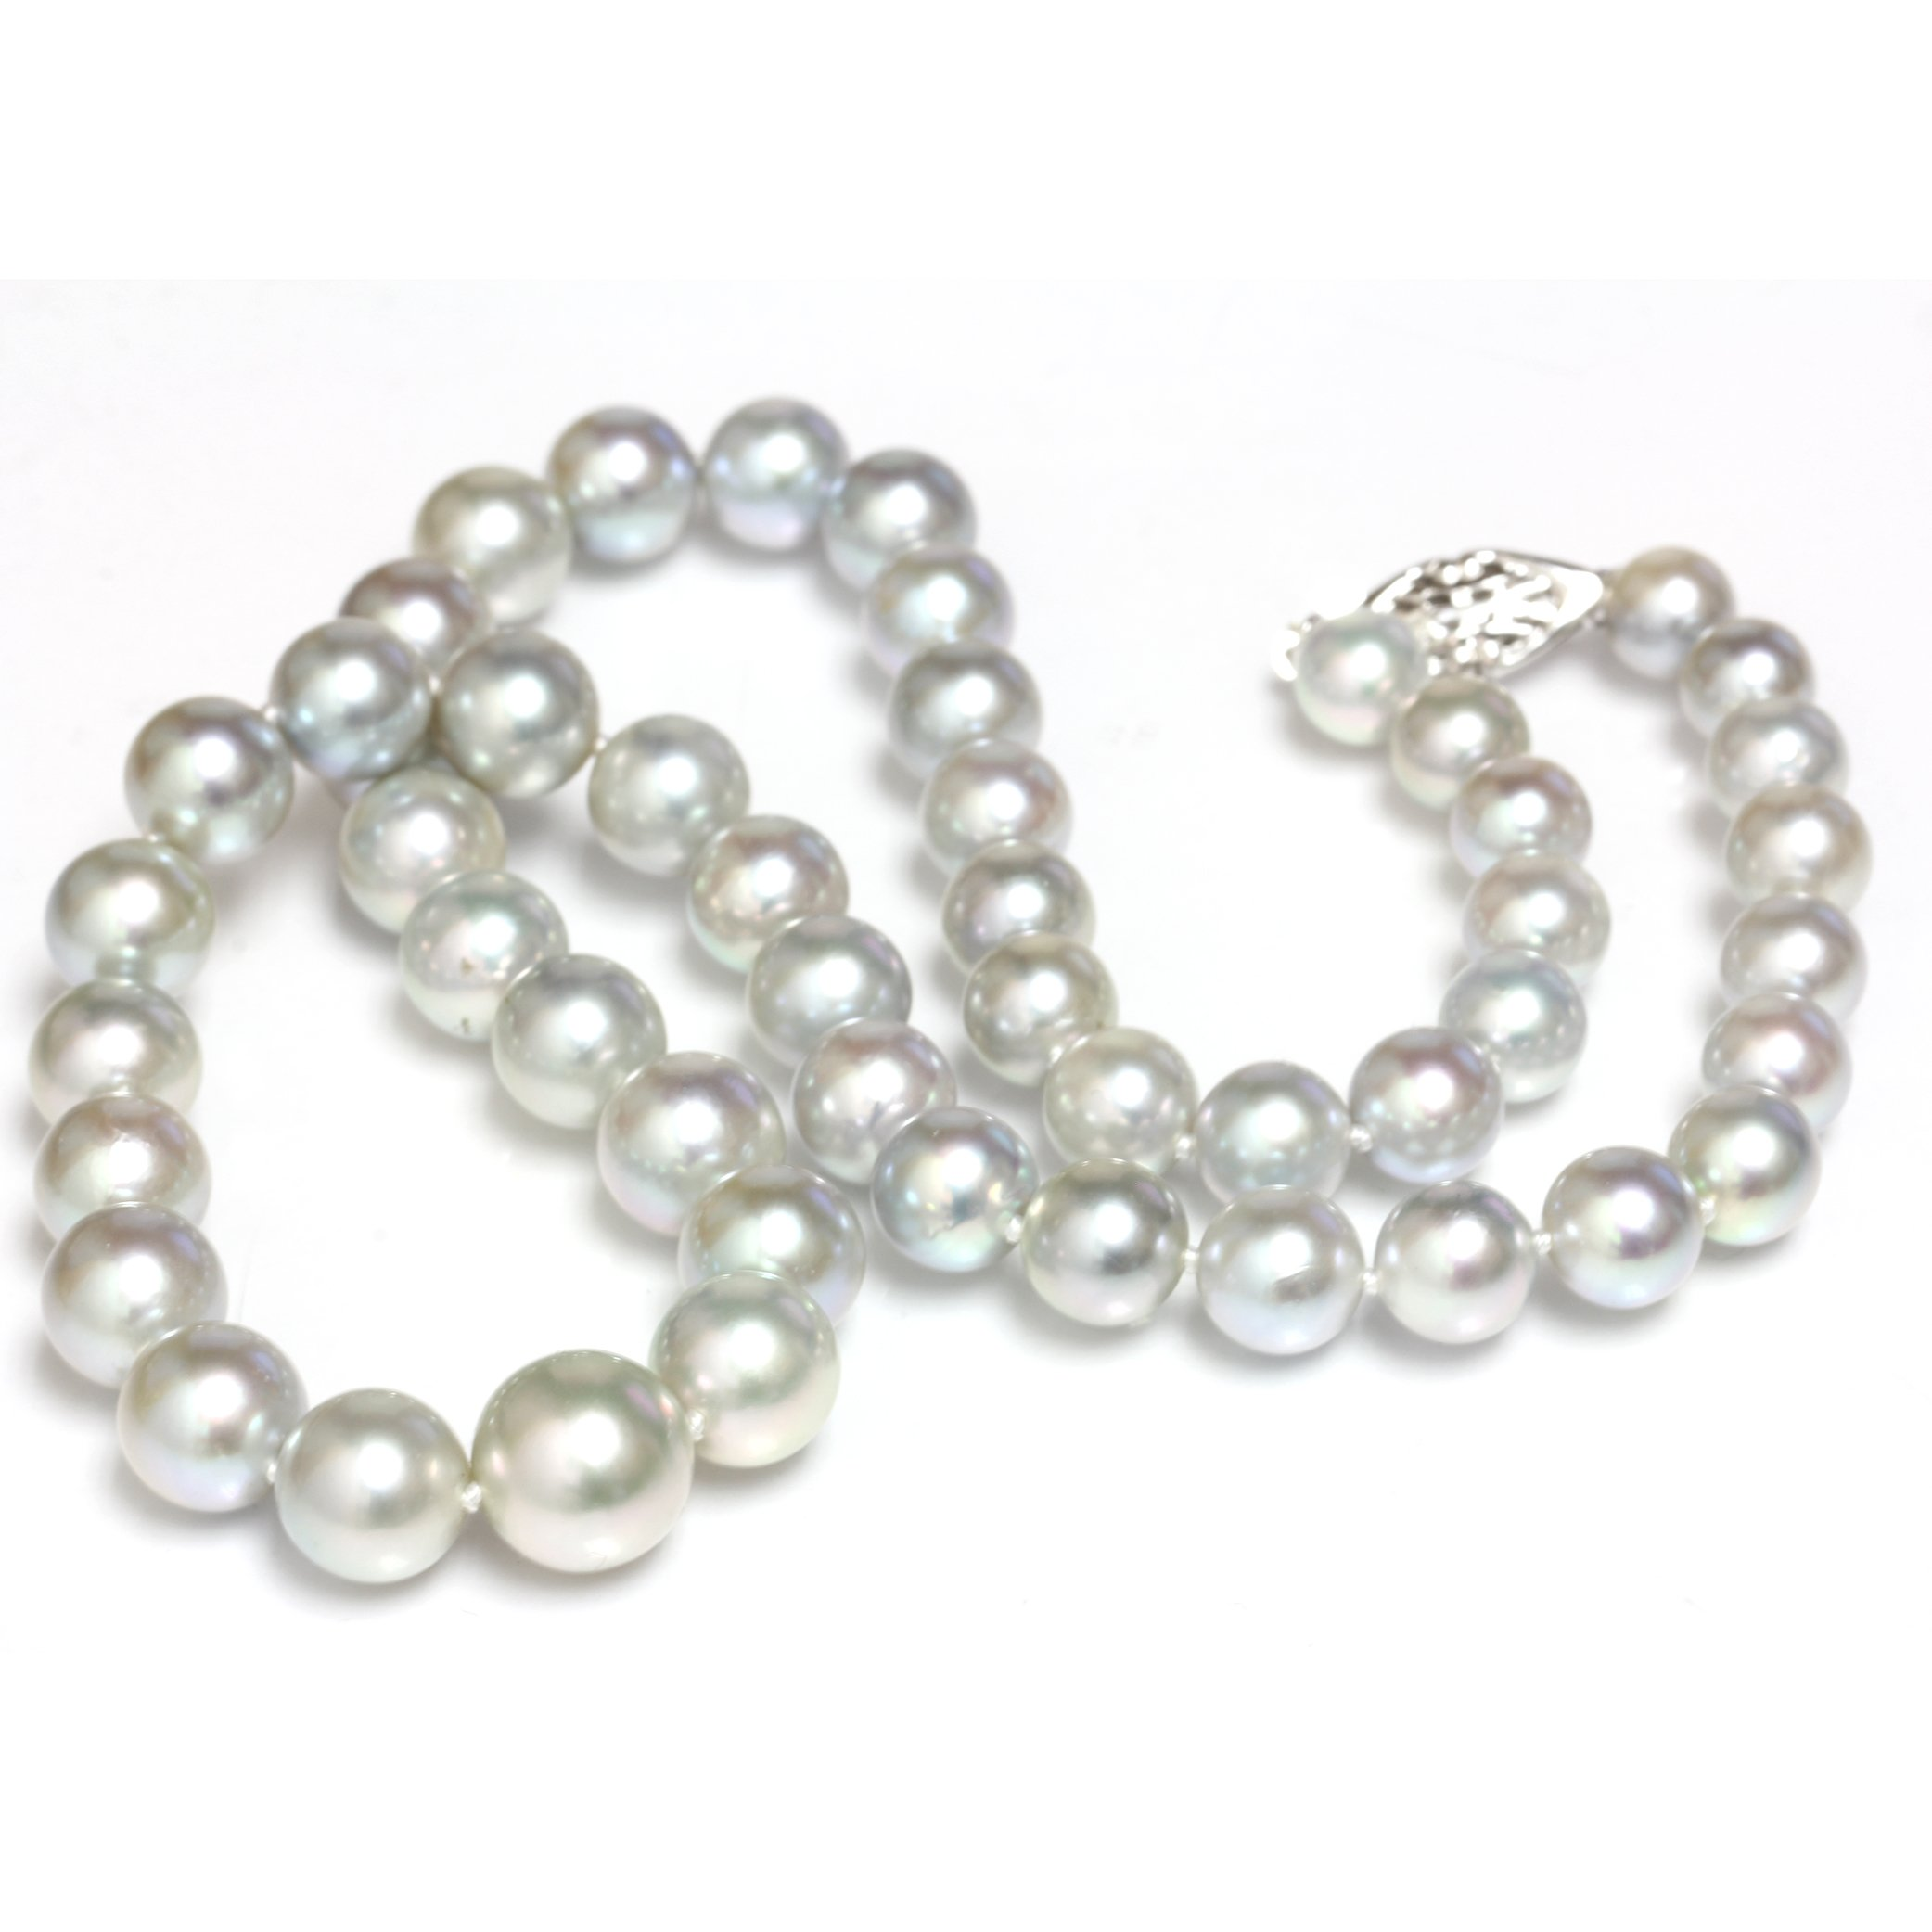 Akoya Pearl Graduated Necklace 10 - 7 mm Silver Blue AAA 14kt White Gold Clasp